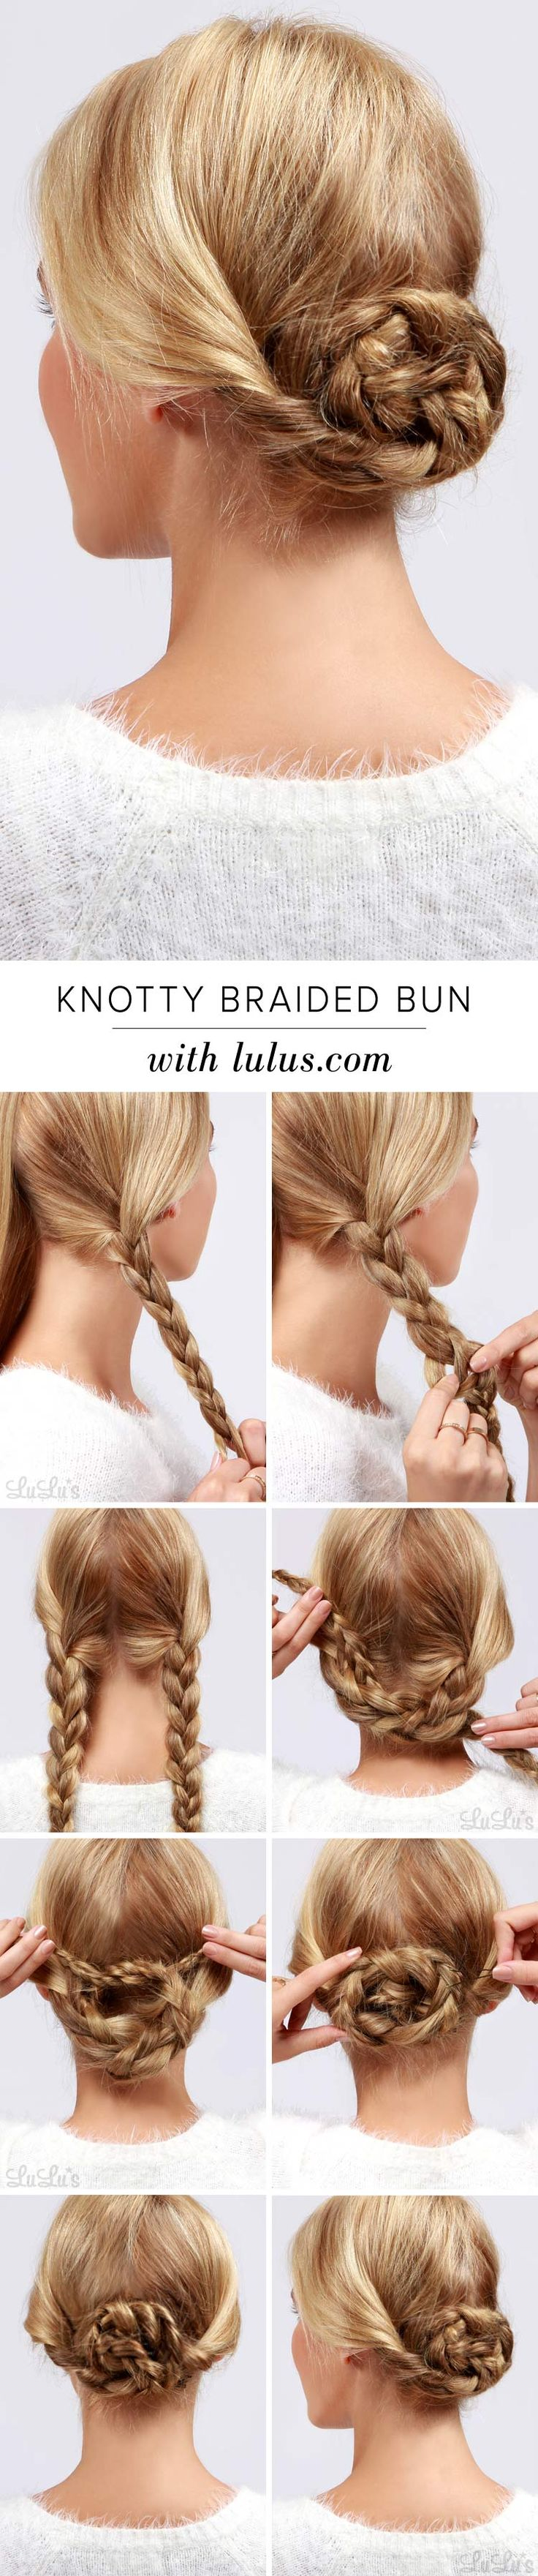 "Being a little ""knotty"" every once in a while is A-okay with us, especially if you're talking about our cute and simple Knotty Braided Hair Tutorial!"